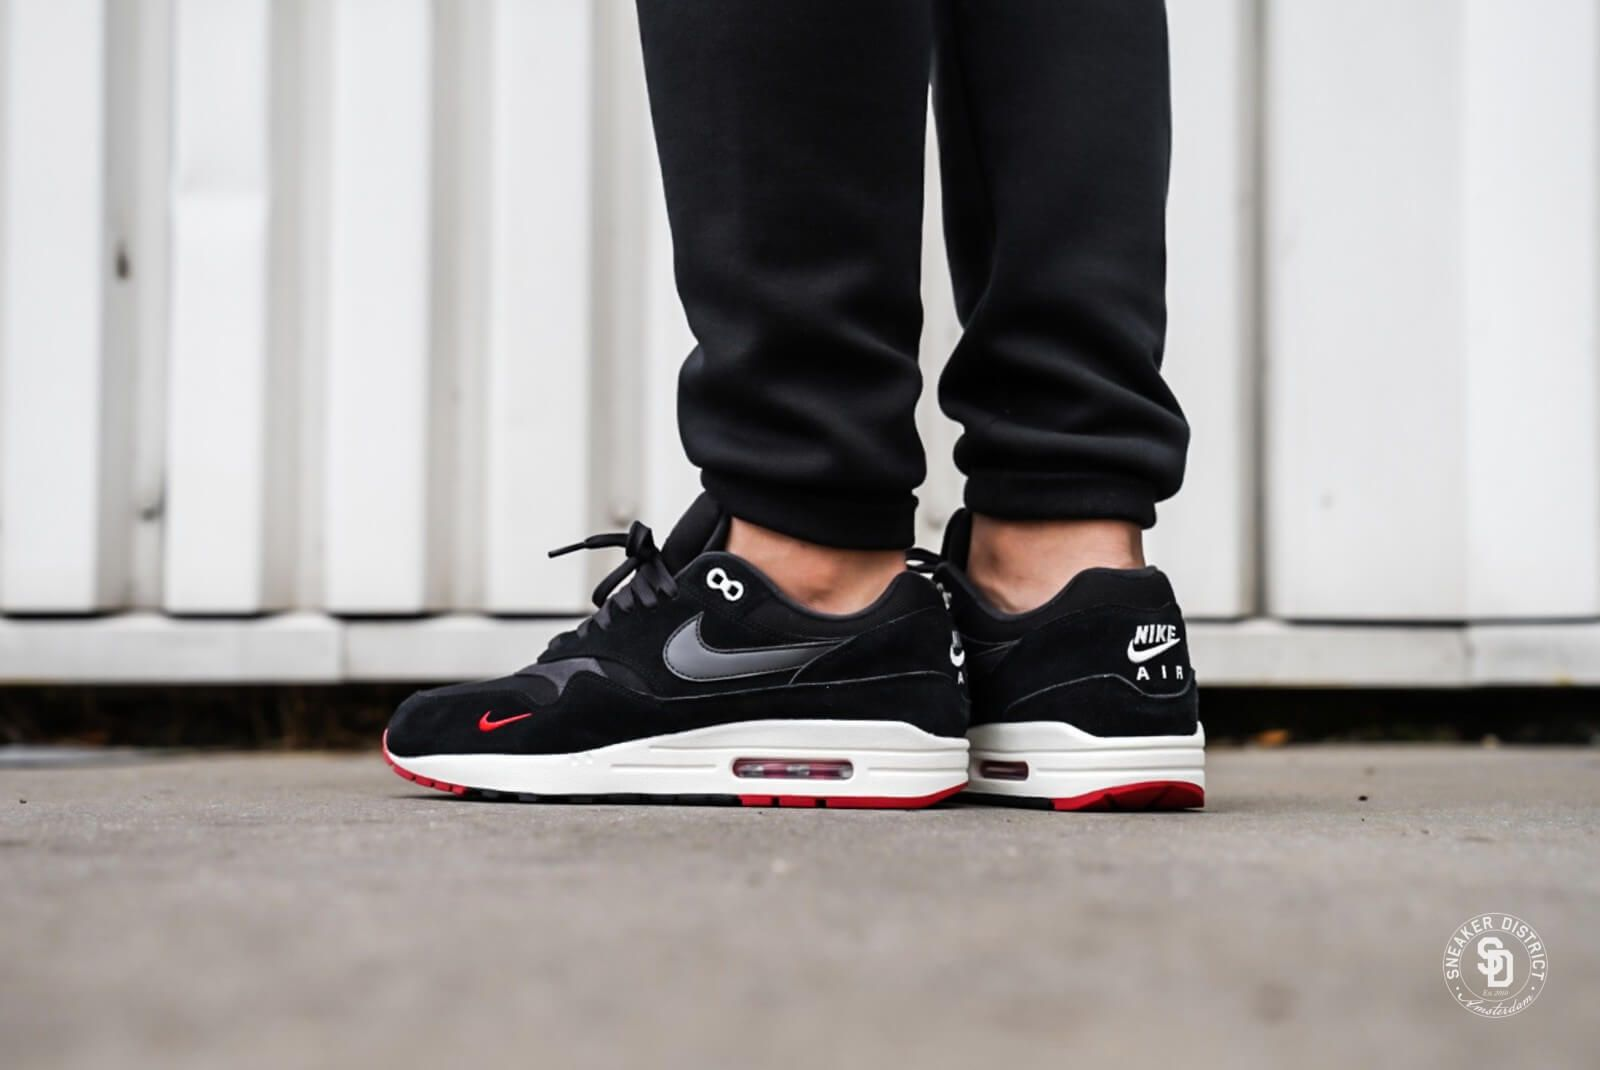 0b94a9f46f7a Nike Air Max 1 Premium Mini Swoosh Black University Red - 875844-007 ...